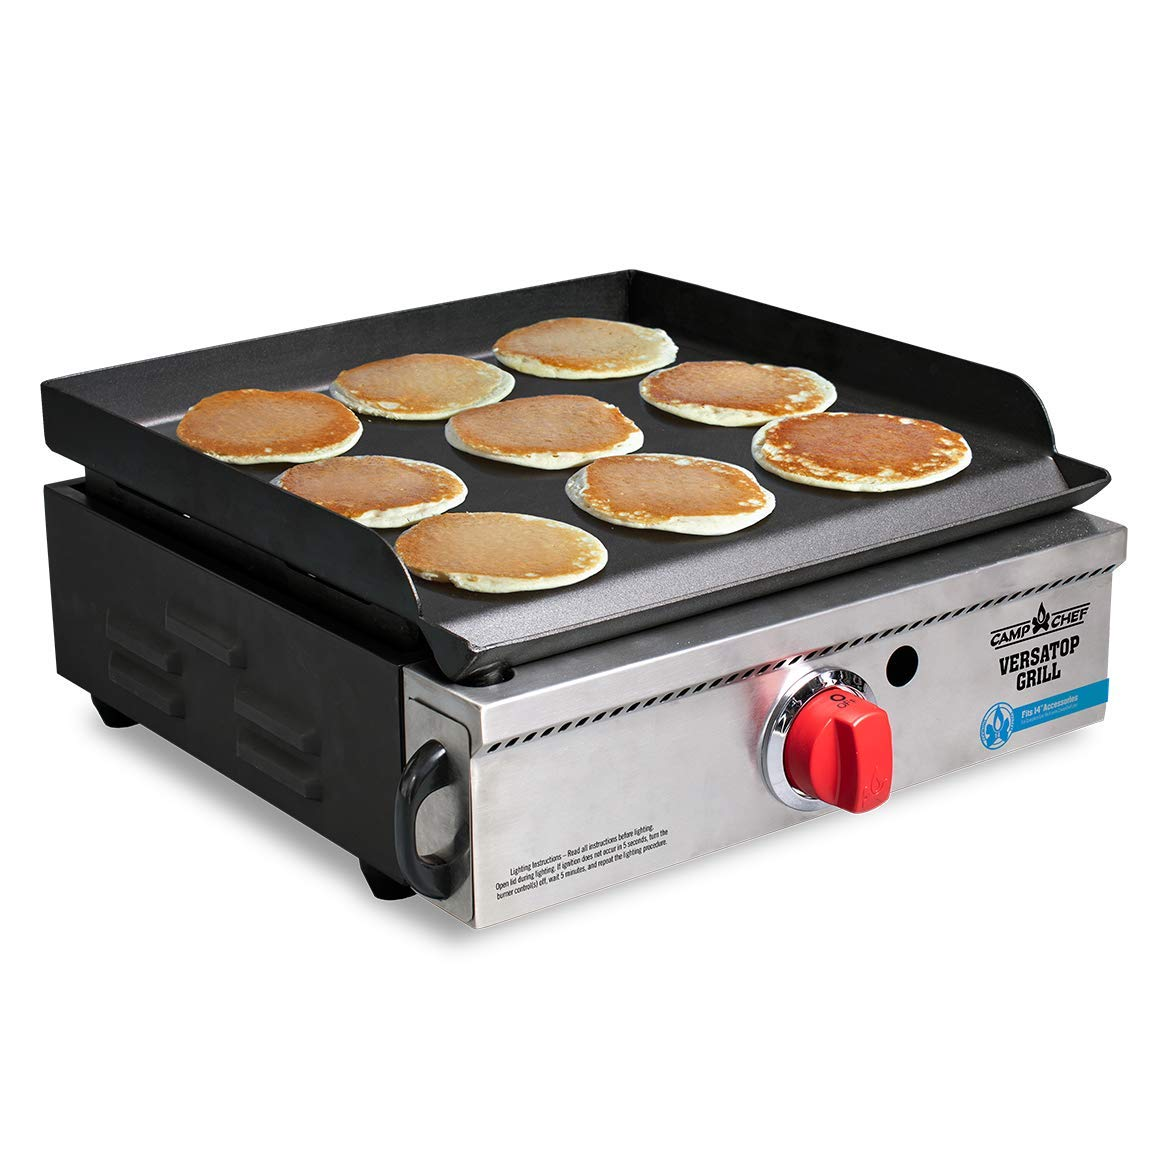 """Camp Chef Versatop Portable Flat Top Grill 250 and Griddle (FTG250) - Compatible 14"""" Accessories"""